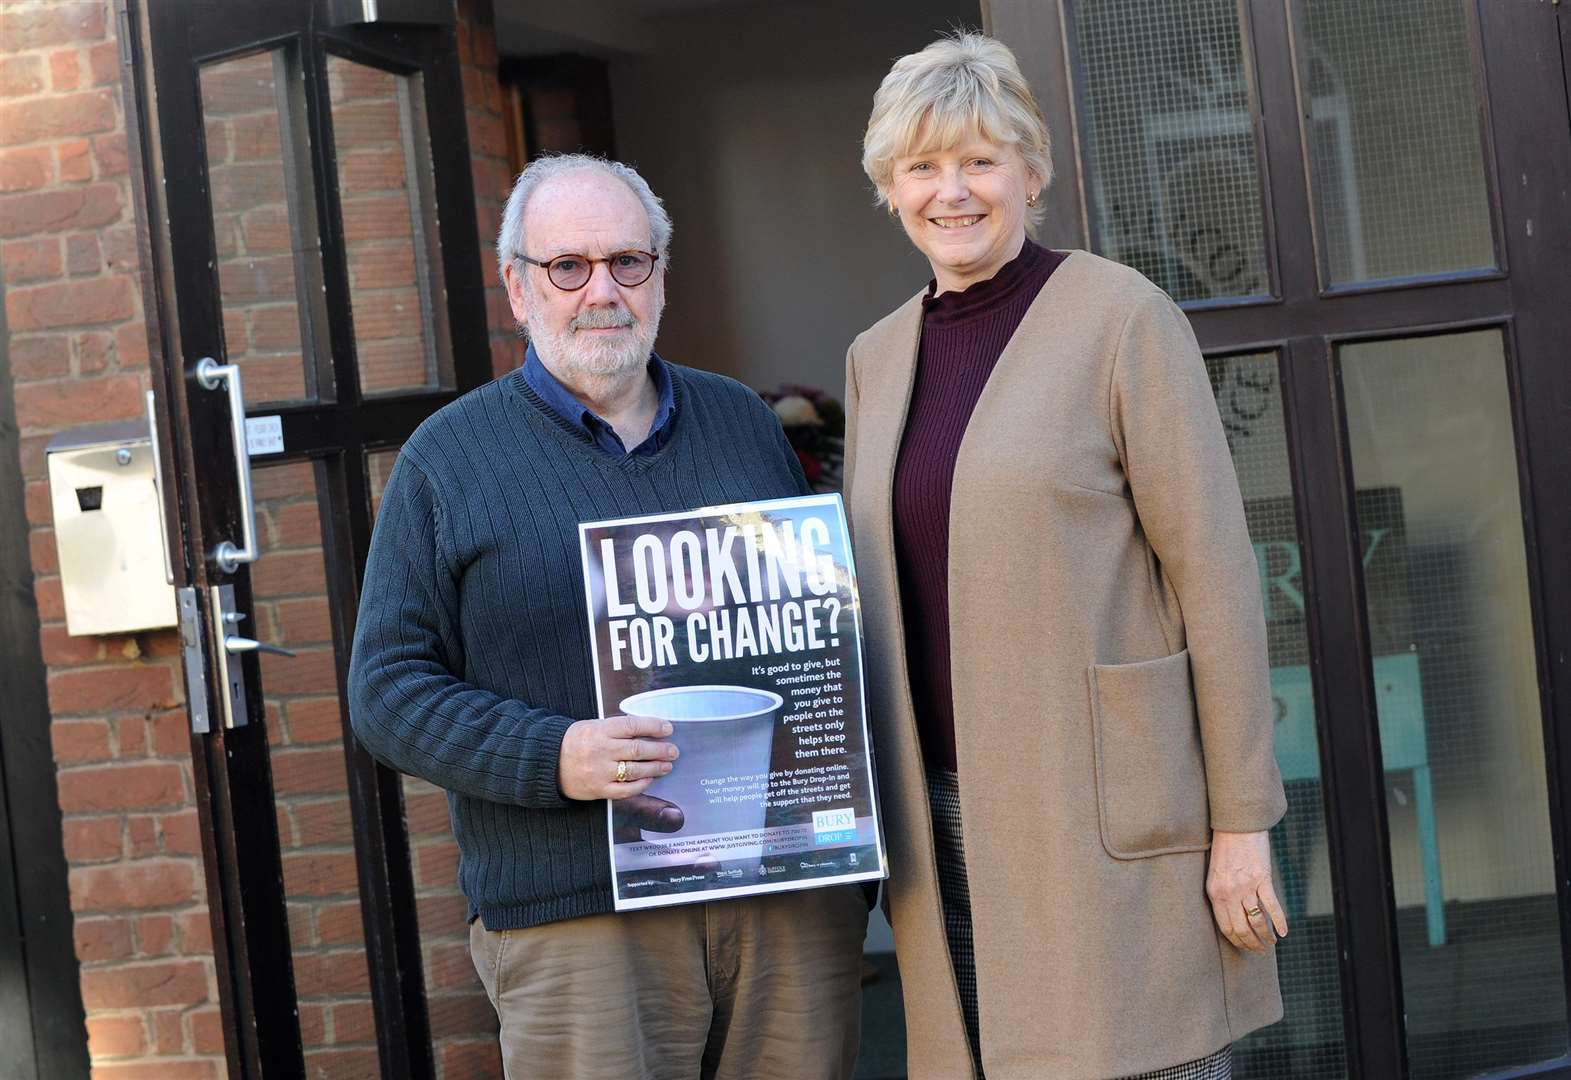 Bury Drop In: 'Have faith in new campaign'